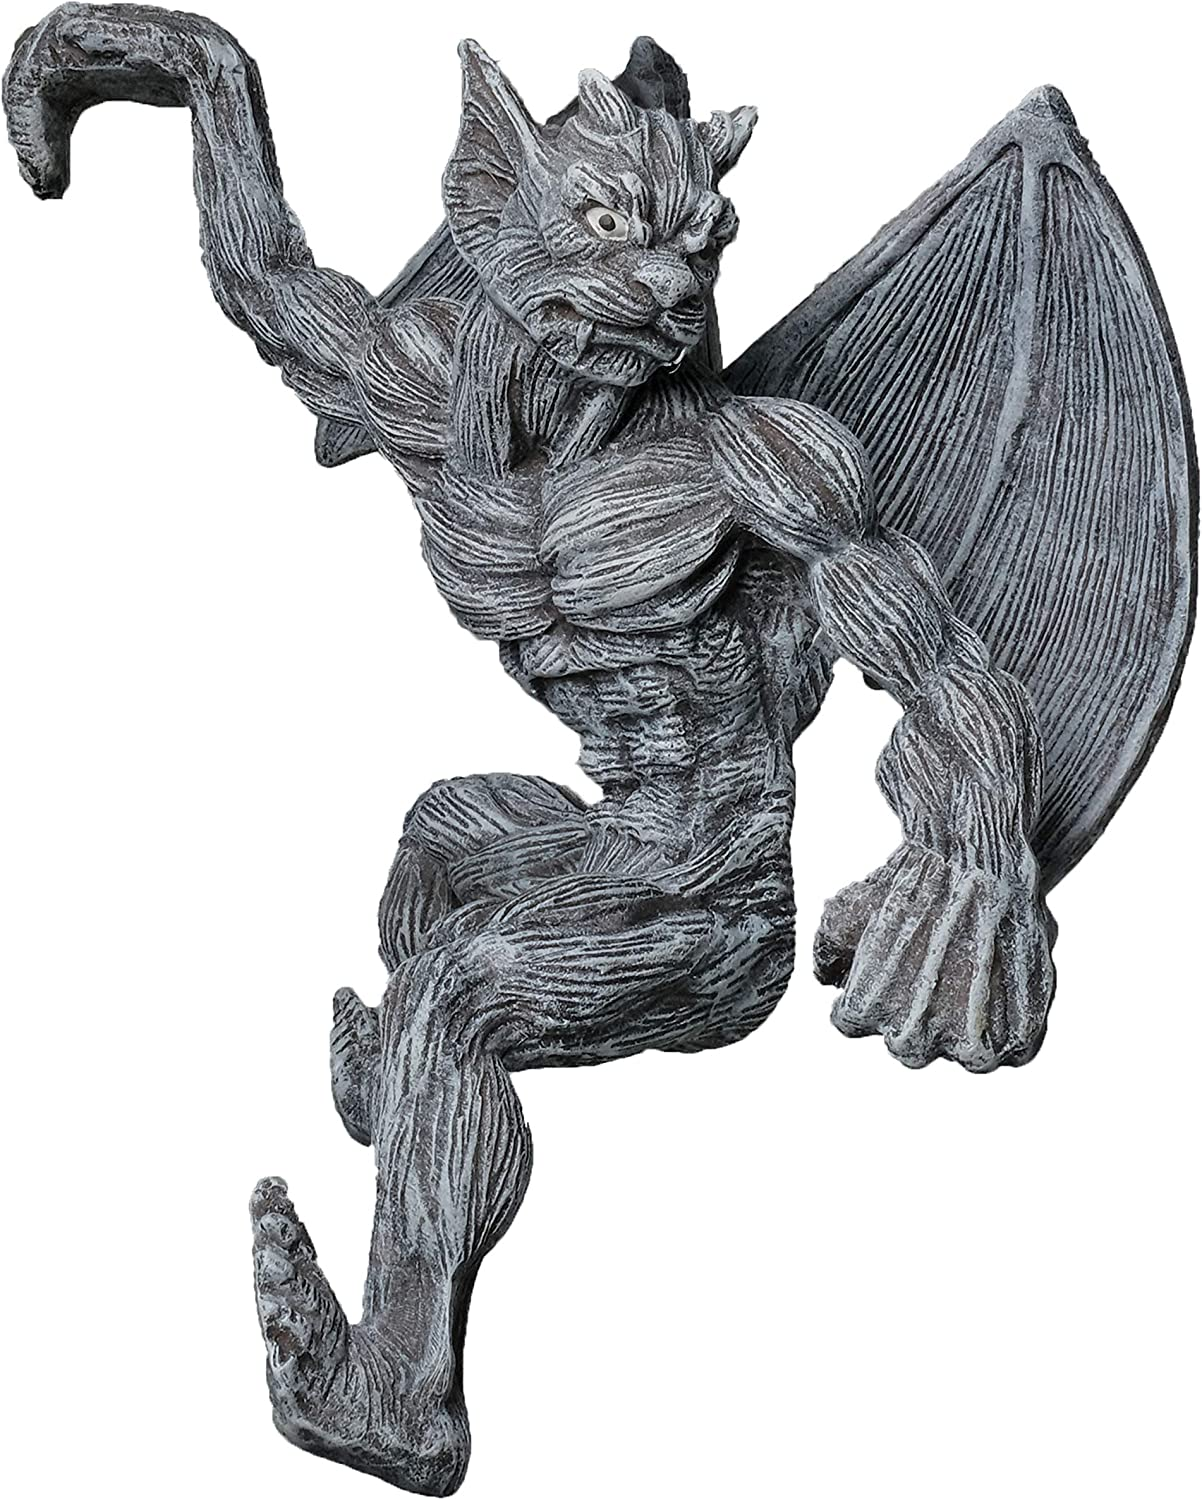 BELLA HAUS DESIGN Gargoyle Fence Topper Hanger- Outdoor Wall Decor- Detailed Hanging Garden Statue- Gothic Climbing for Patio, Porch, Fence, Garden